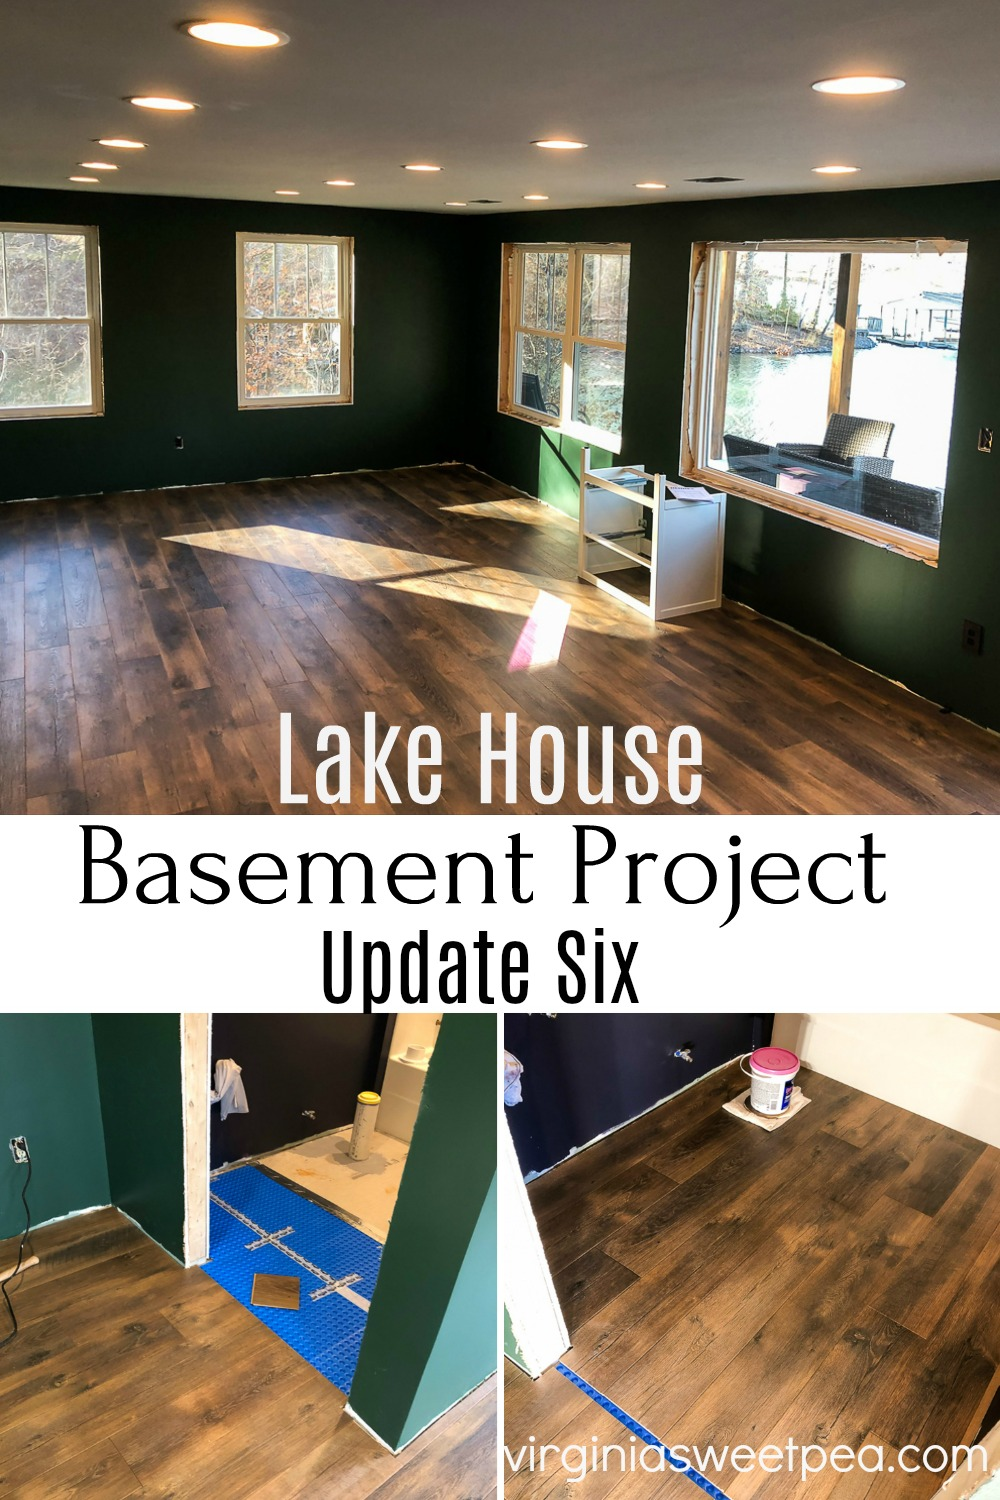 Lake House Basement Project - Update Six - An unfinished basement is being transformed into a family room, bathroom, and bedroom. In this update, the flooring is completed, canned lights are installed and an Ikea sink is assembled. #basementproject #finishingabasement #smithmountainlake #virginiasweetpea